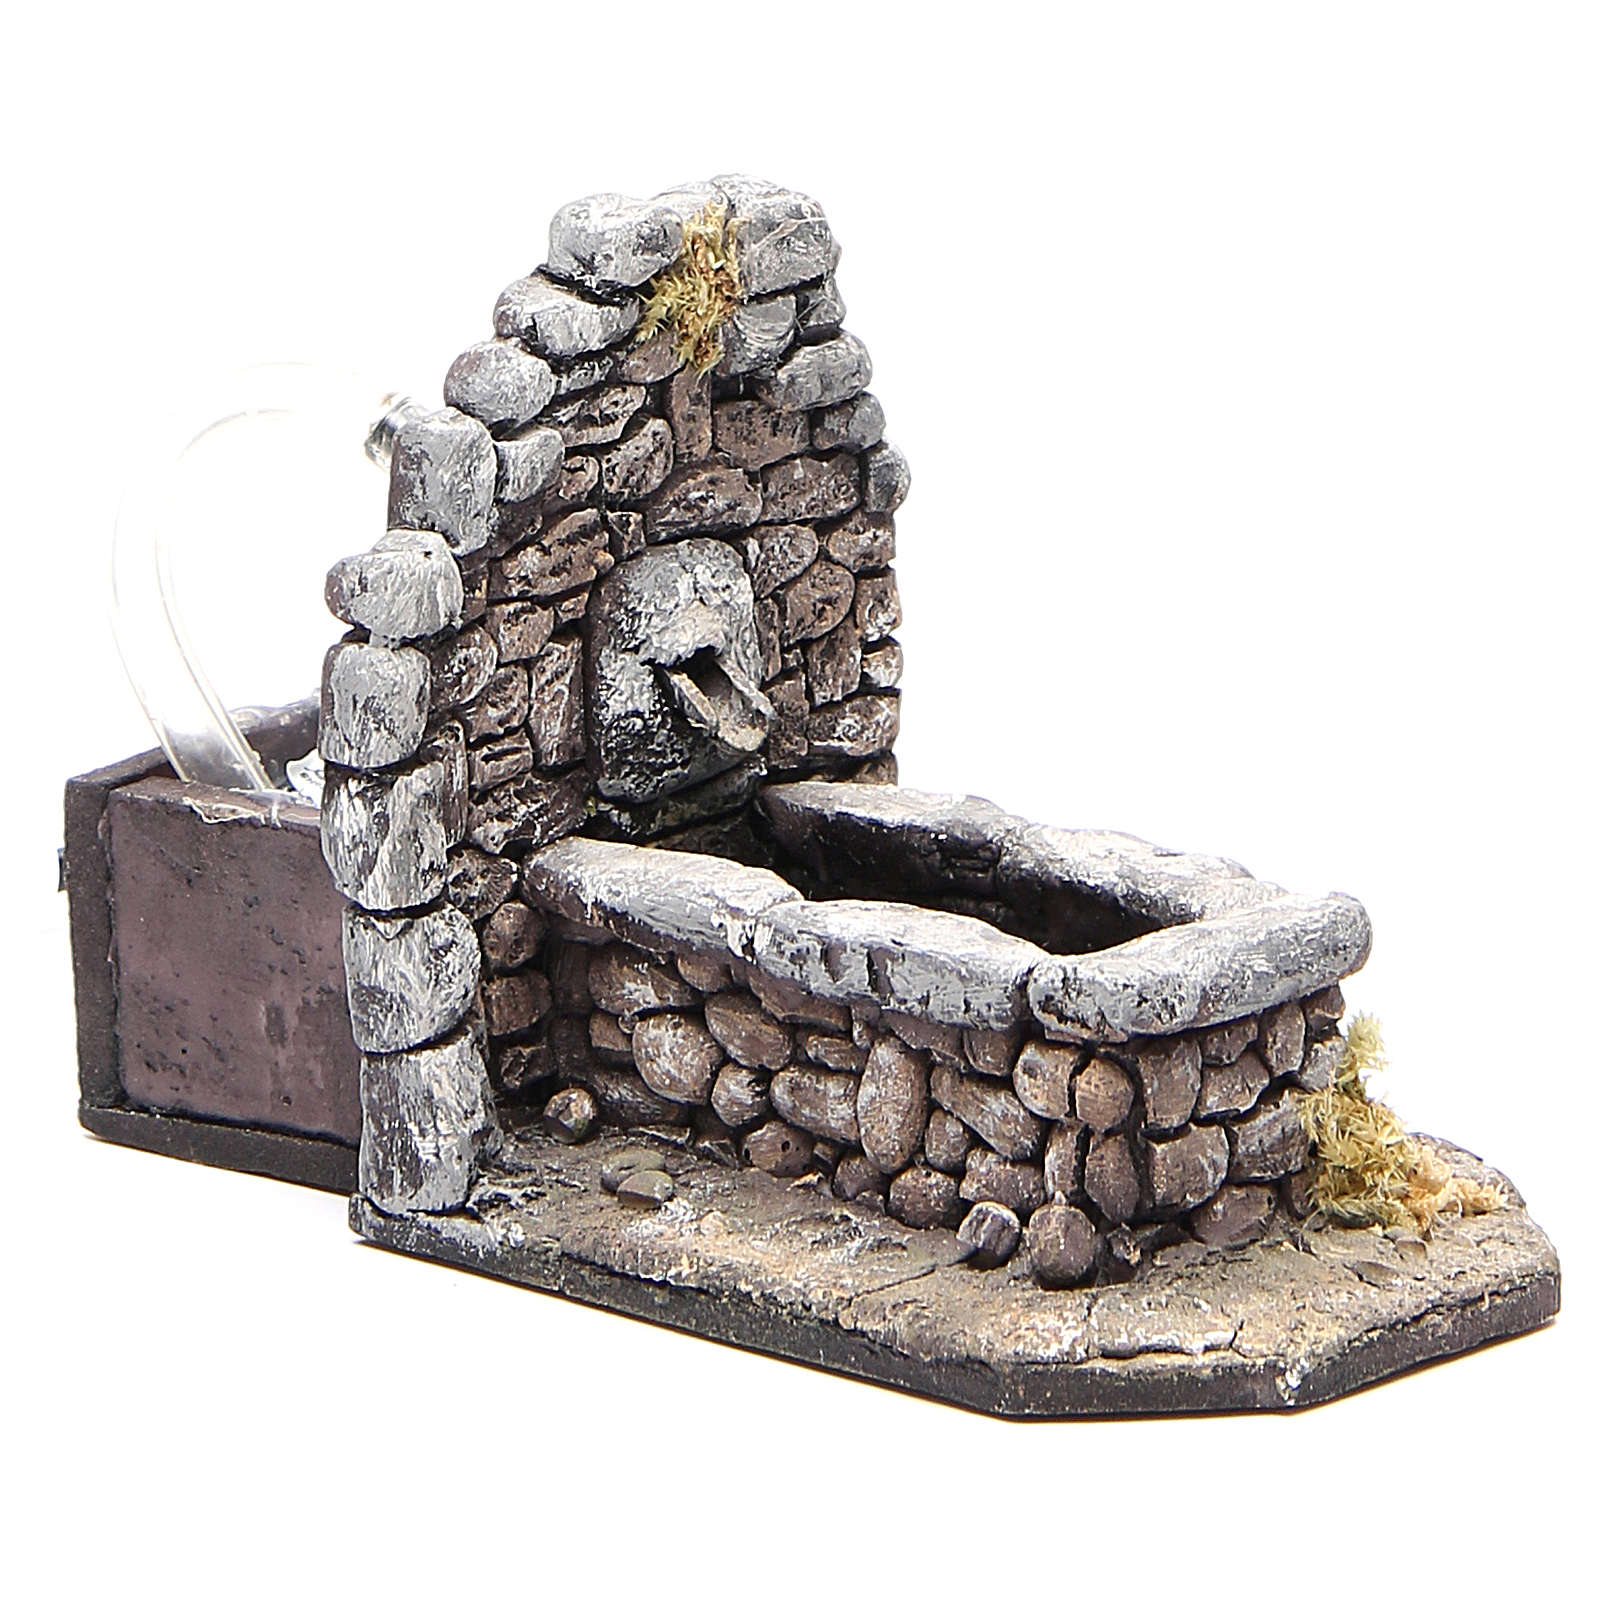 Electric fountain for nativities in rock-like resin 11x16x8cm 4